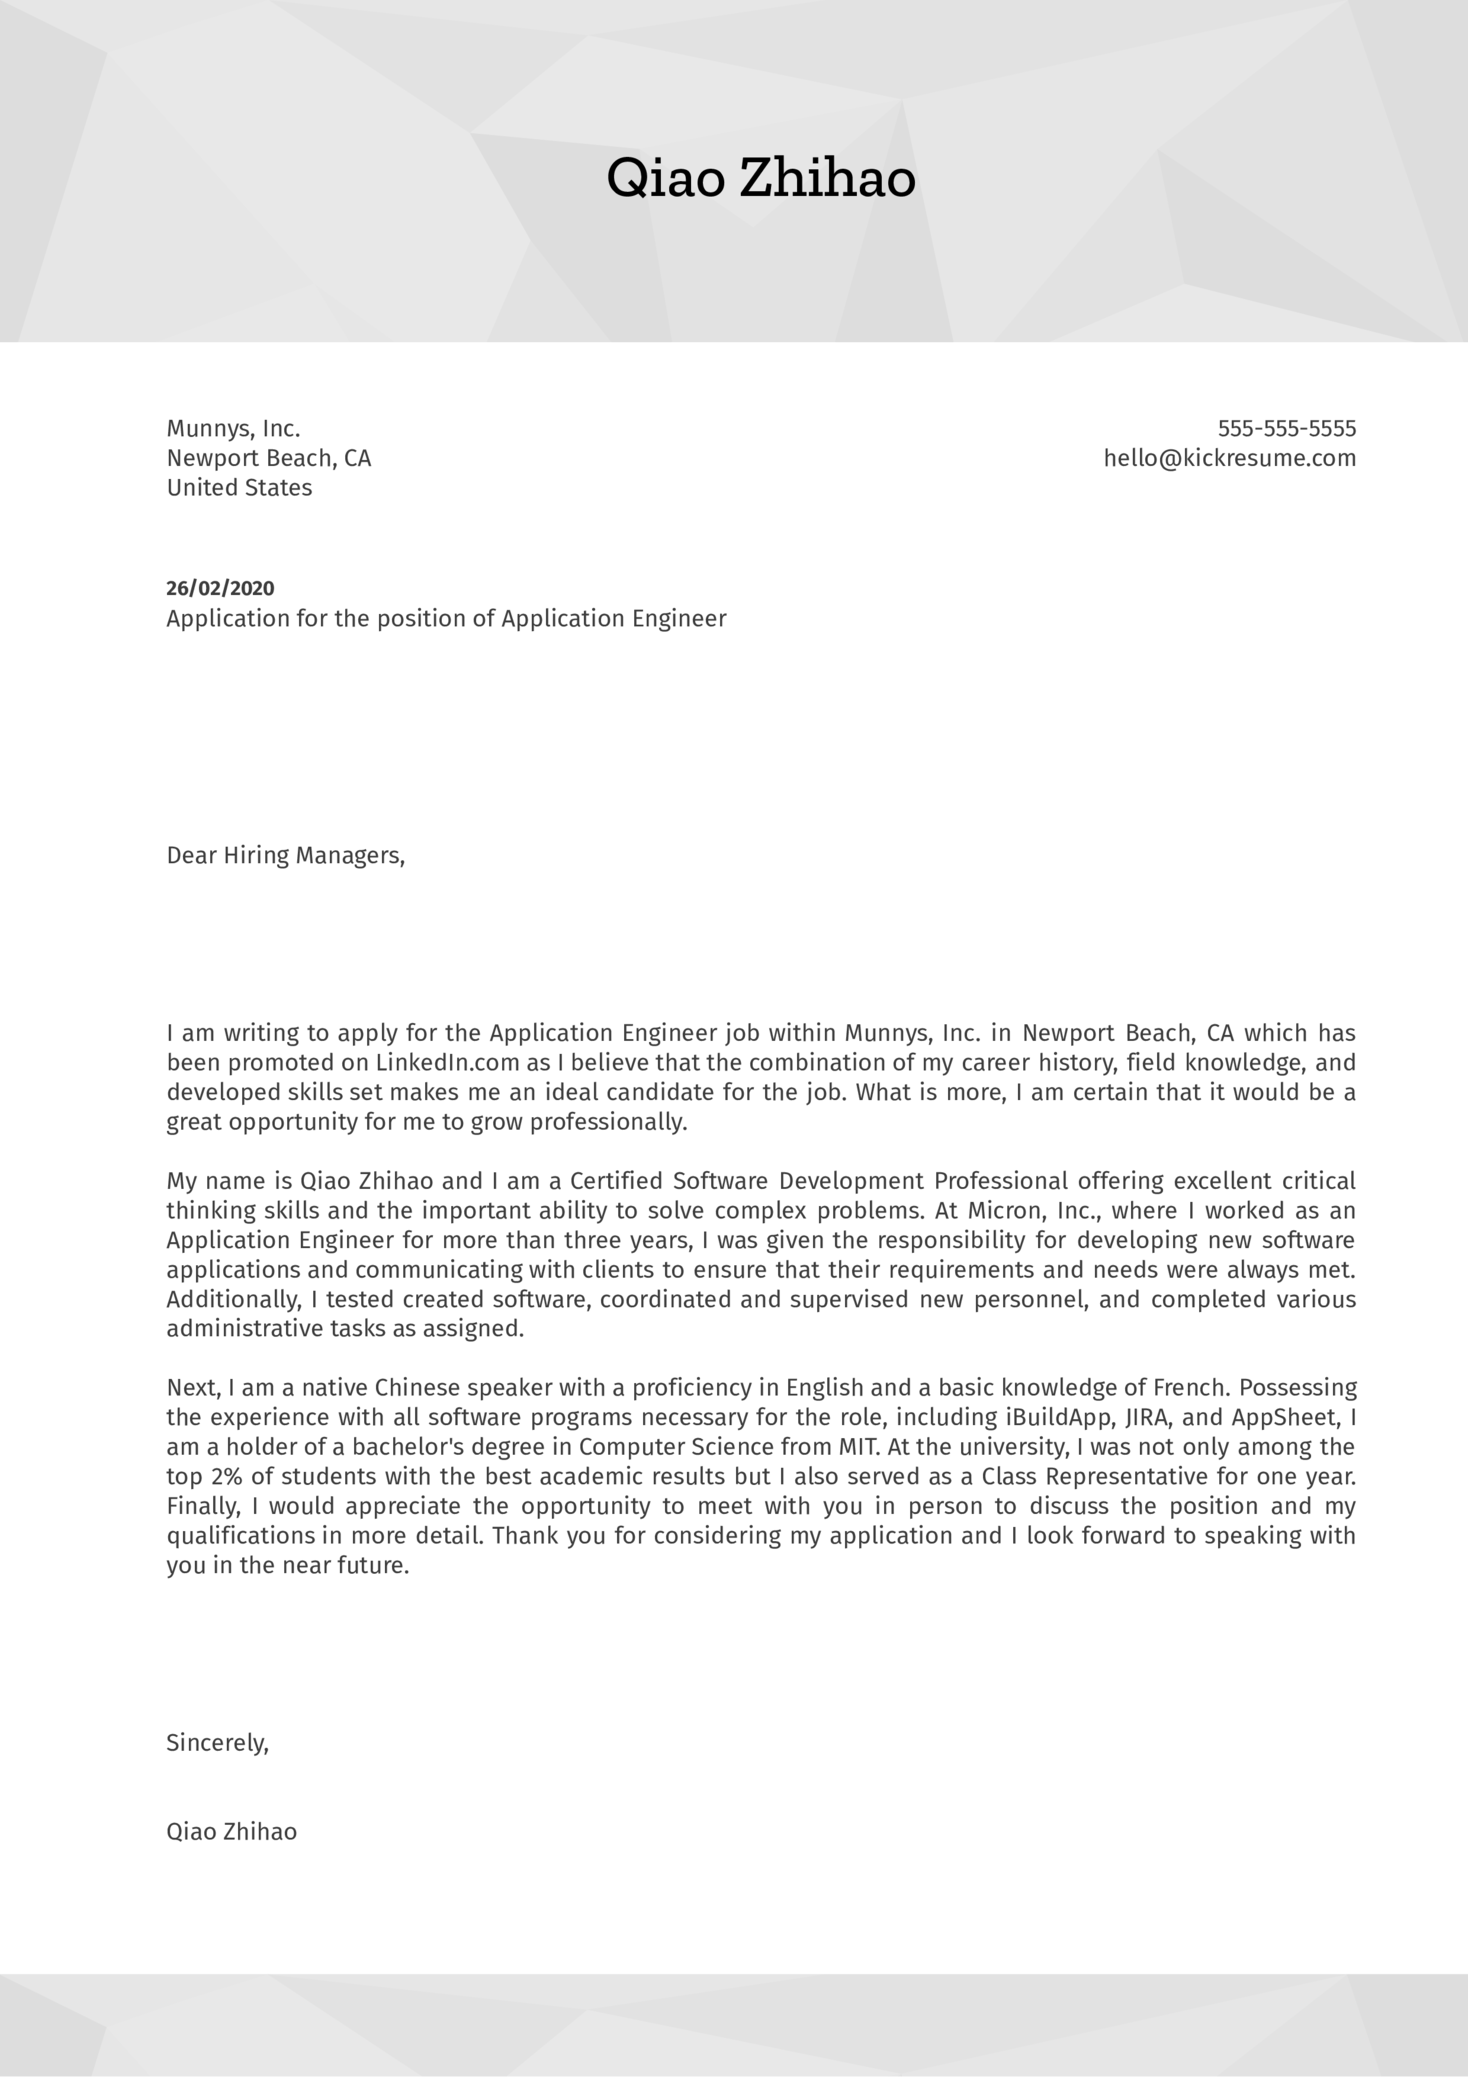 Application Engineer Cover Letter Sample